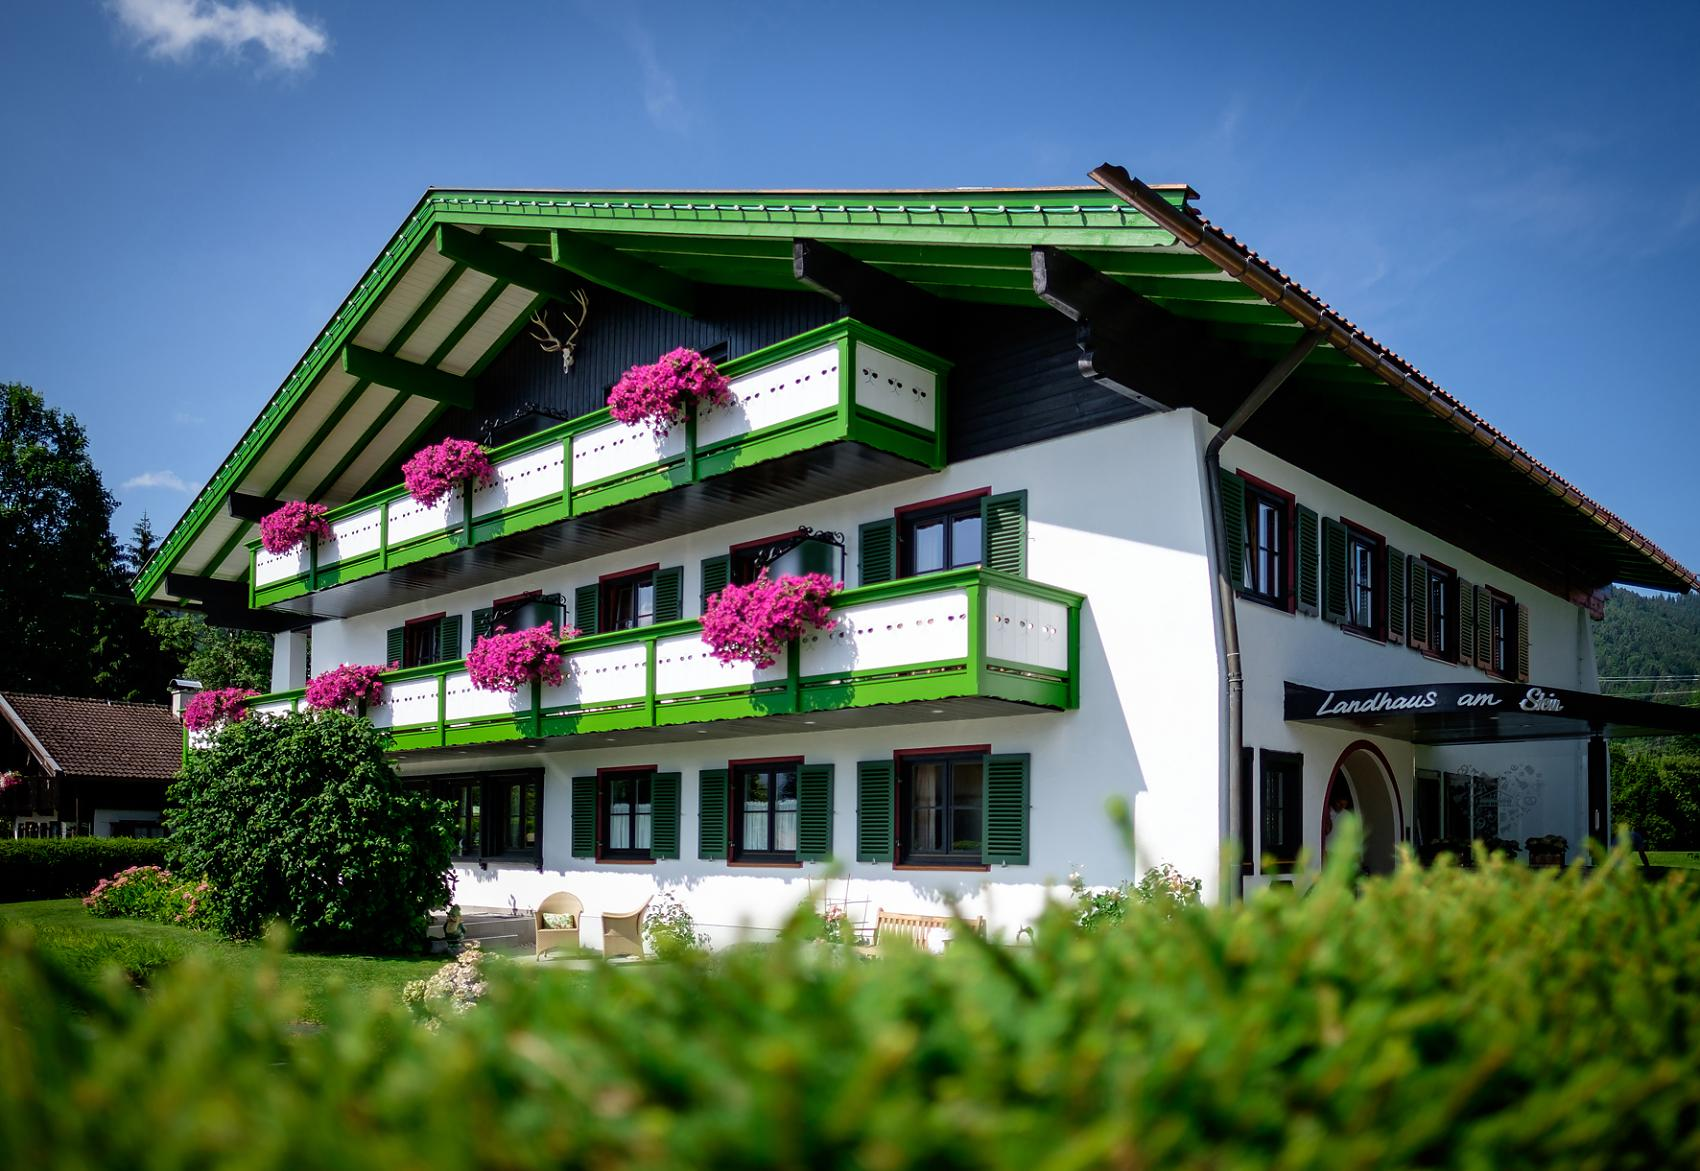 Landhaus am Stein in Bad Wiessee